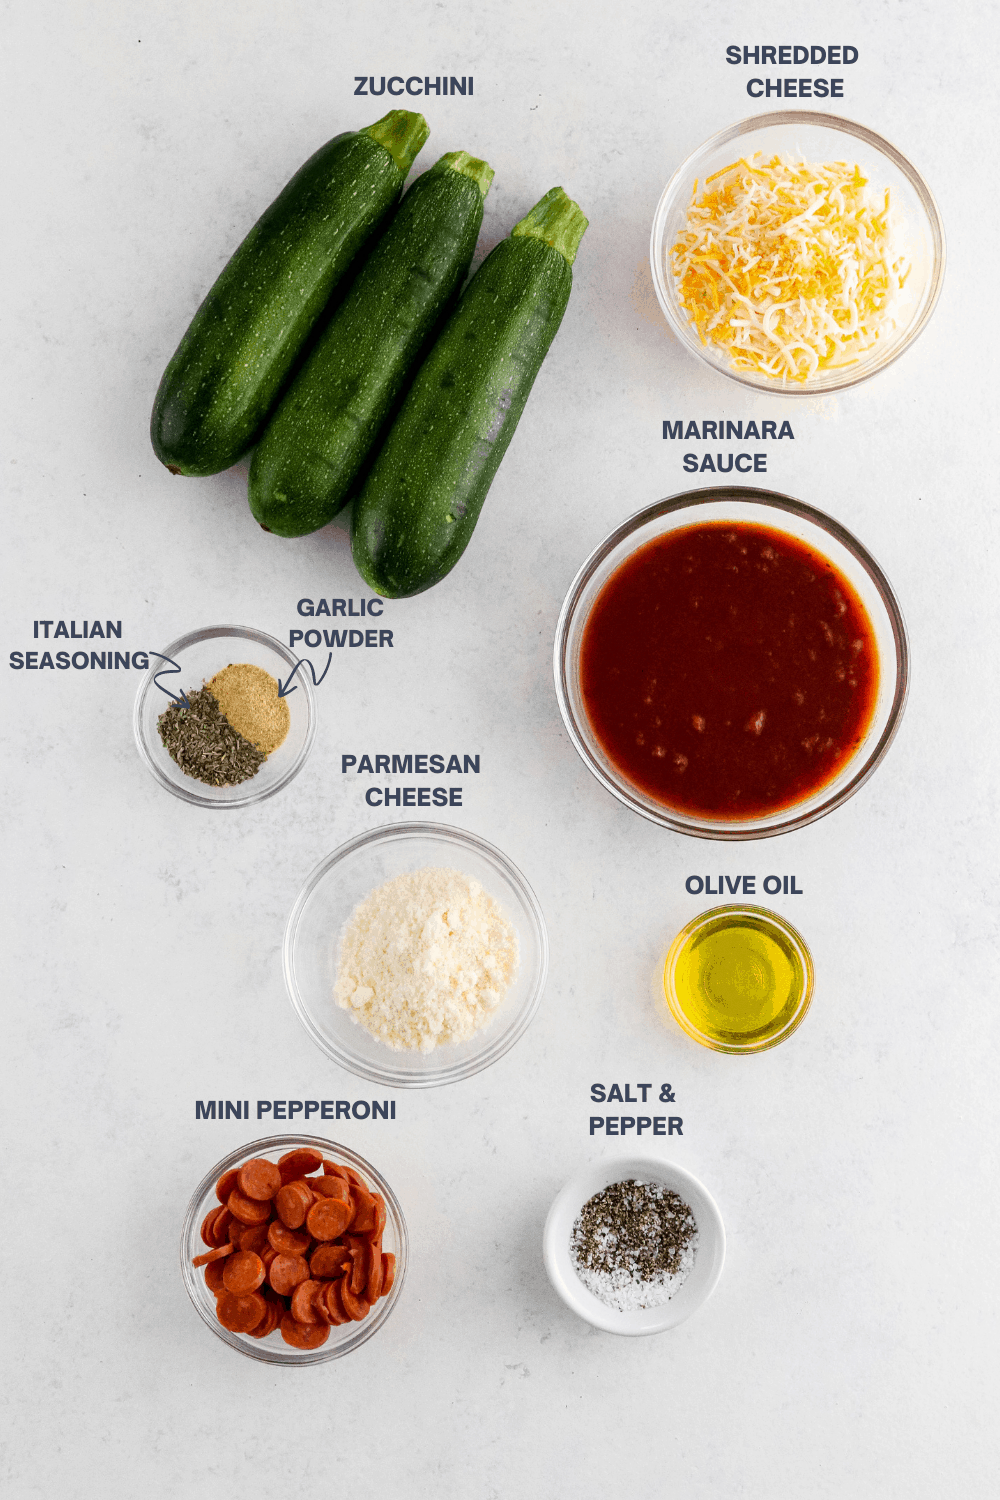 Whole zucchini, bowl of shredded cheese, bowl of red sauce, bowl of seasoning, bowl of parmesan cheese, bowl of olive oil, Bol of mini pepperoni and a bowl of salt and pepper on a white surface.